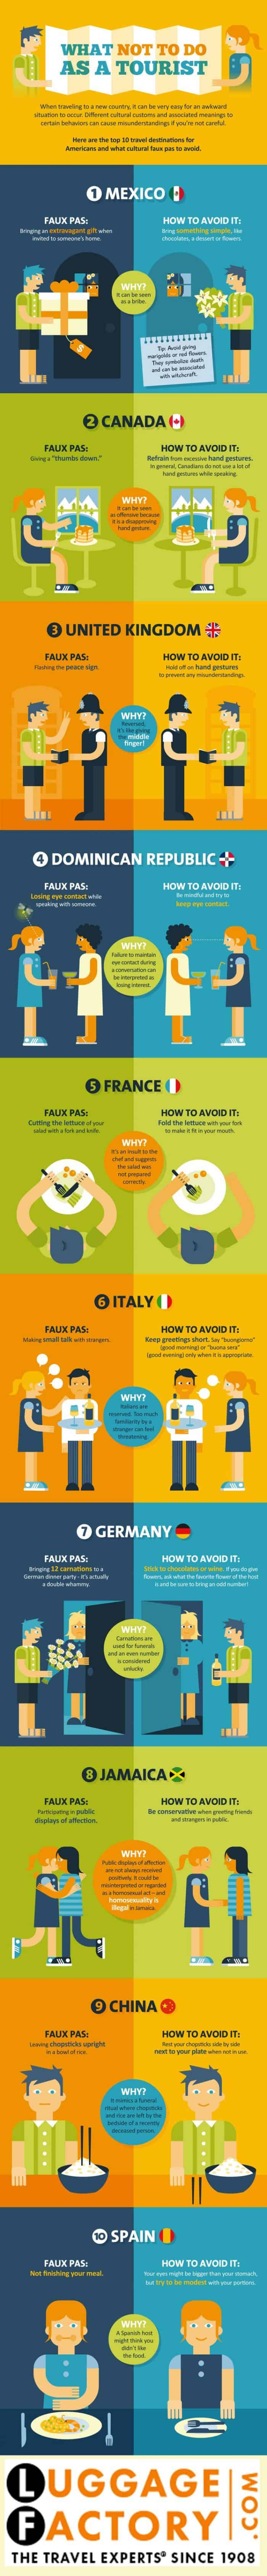 What Not To Do As A Tourist Infographic